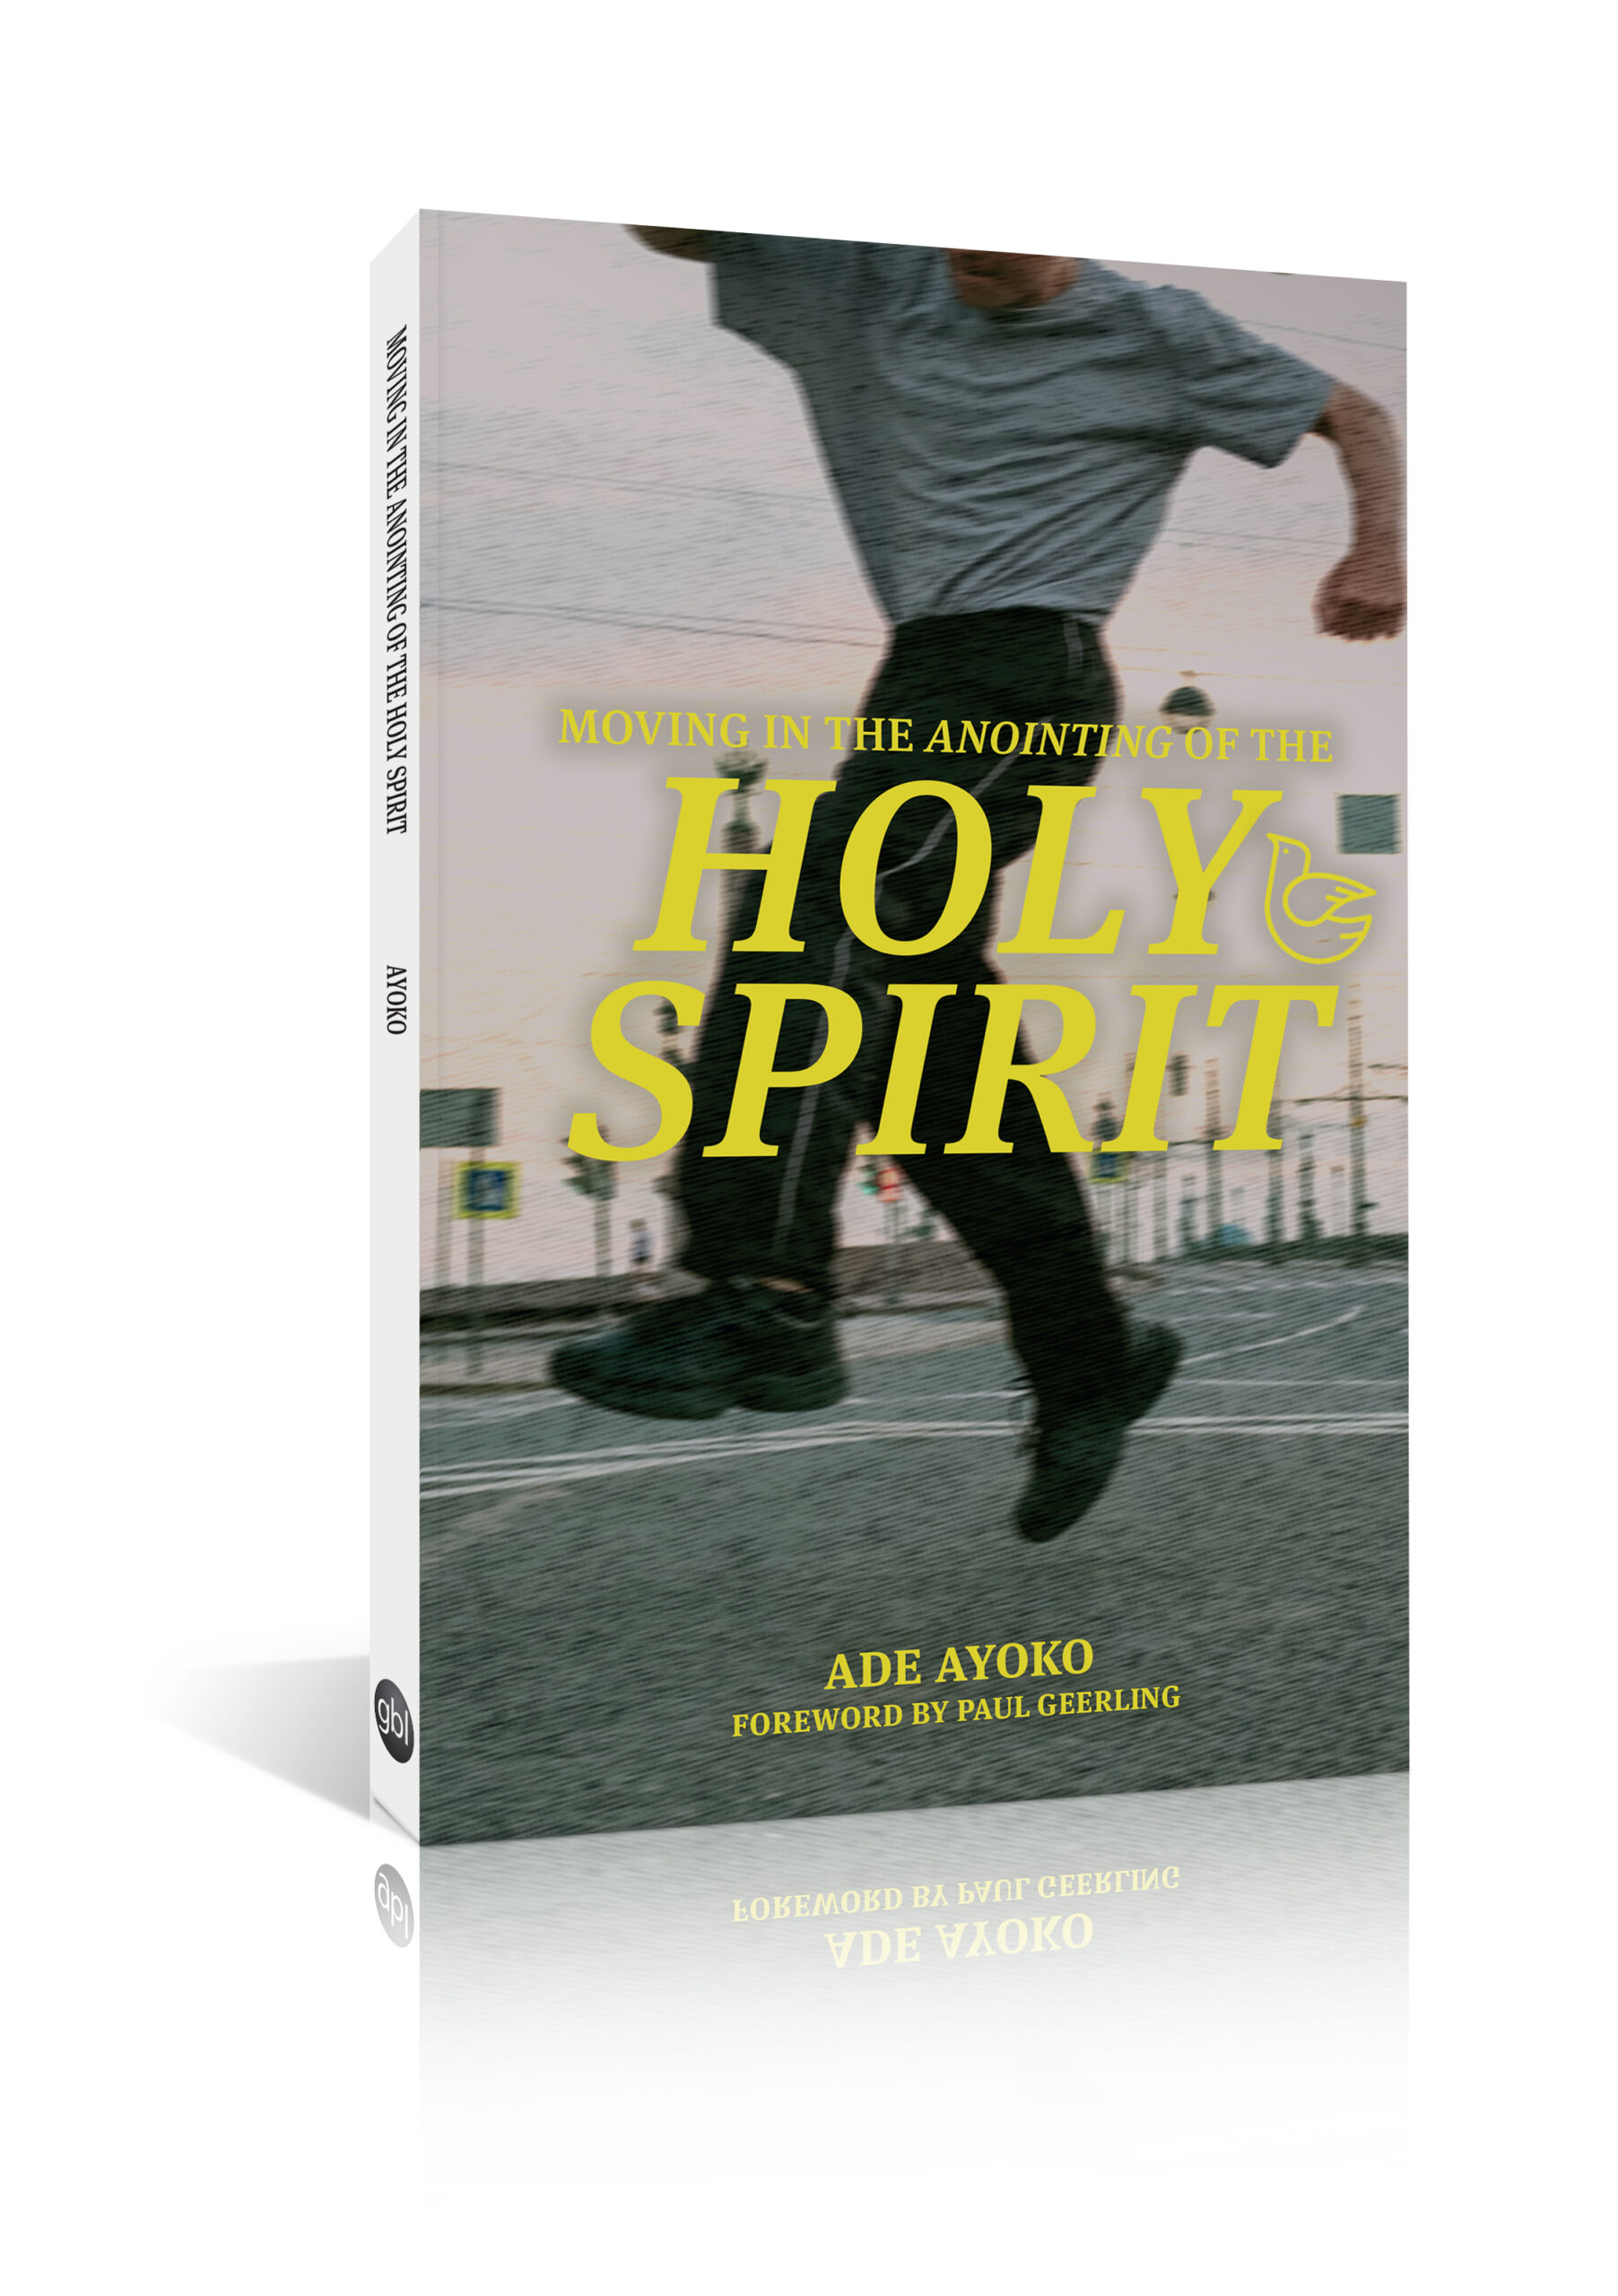 Moving in the Anointing of the Holy Spirit